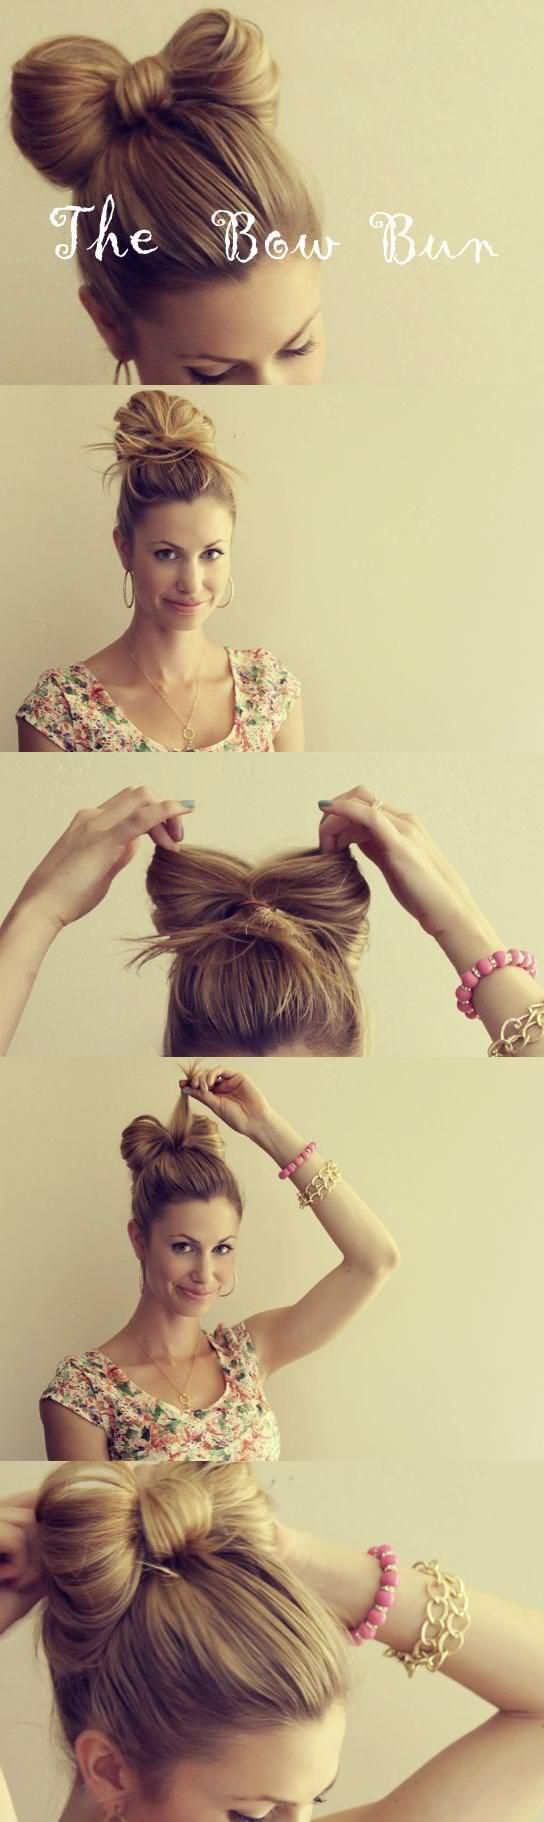 Put a Bow On it: 5 Easy Bow Hairstyles